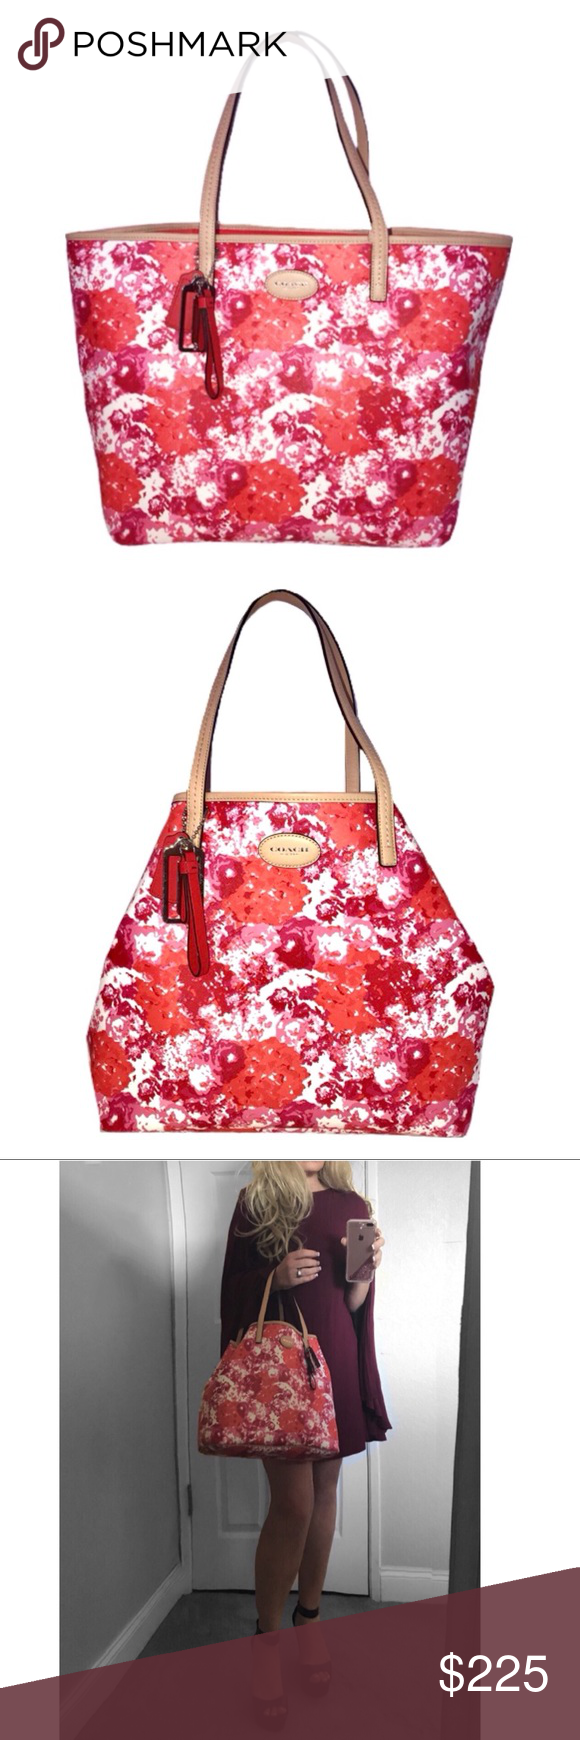 c132e1b908f NWT Coach Metro Floral Print Tote • Spring floral print canvas with leather  trim • Inside zip, cell phone and multifunction pockets • Handles with 7  3 4